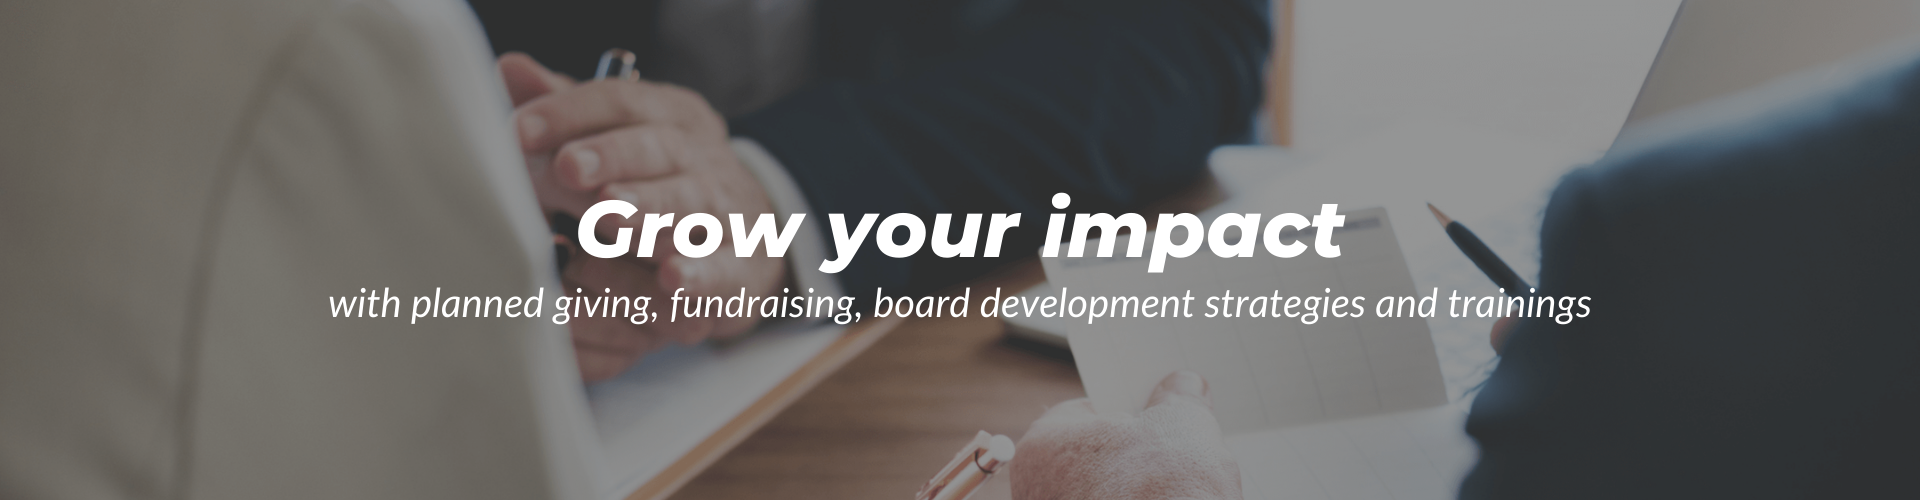 with planned giving, fundraising, board development strategies and trainings